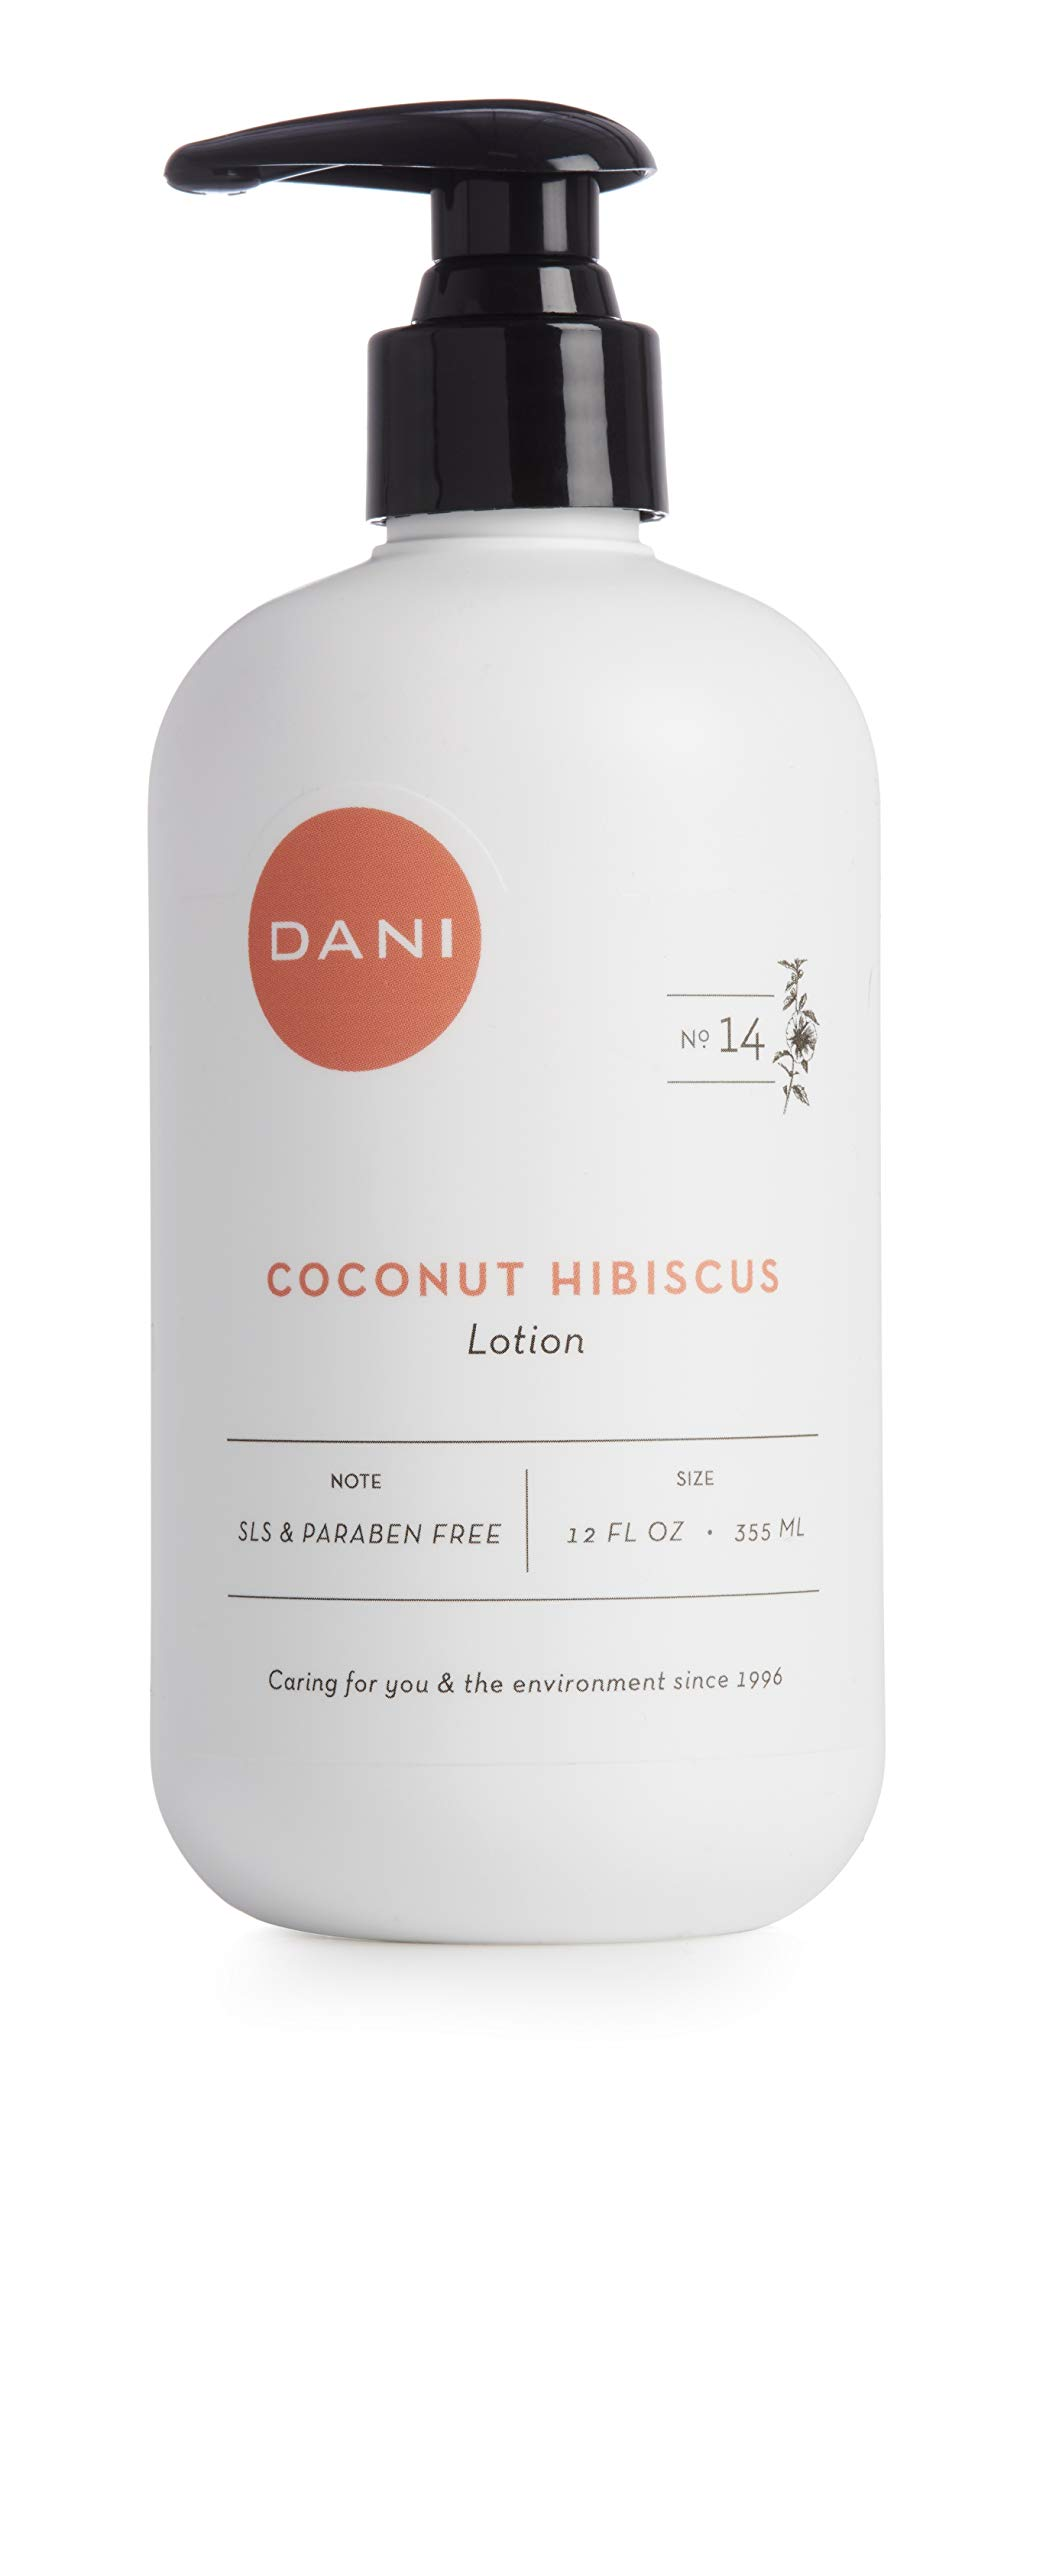 Natural Hand & Body Lotion by DANI Naturals - Tropical Coconut Hibiscus Scented Aromatherapy - Moisturizing Shea & Aloe - with Natural & Organic Ingredients - To Nourish Dry Skin - 12 Ounce Bottle by DANI